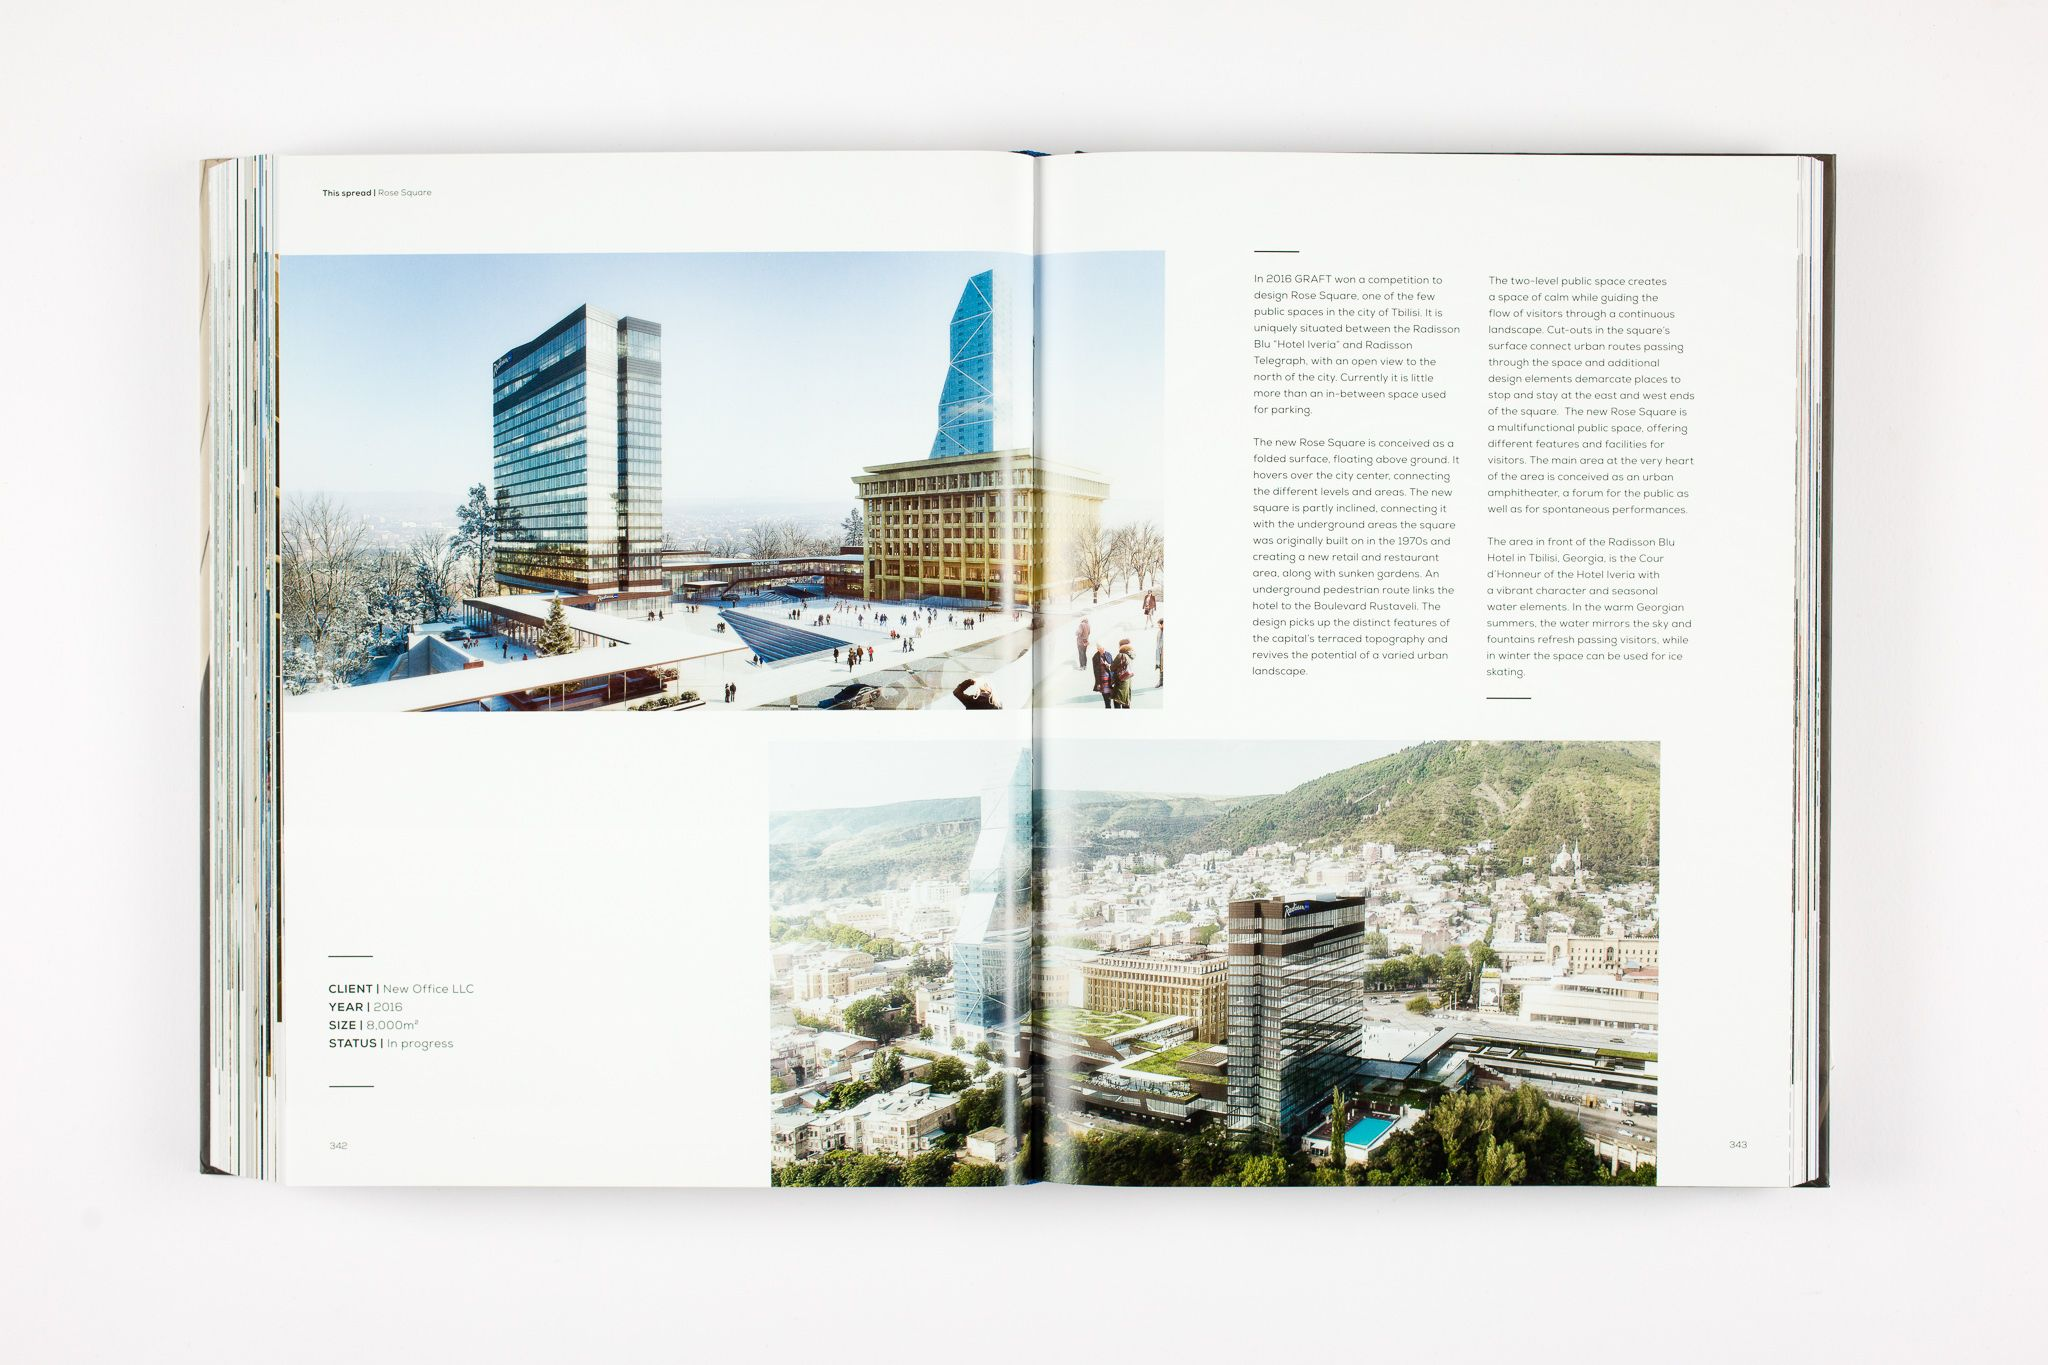 Renowned publishing house Birkhaeuser de Gruyter presents the monograph GRAFT Home. Story. that shows a comprehensive overview of the firm's work in the field of housing and hospitality.